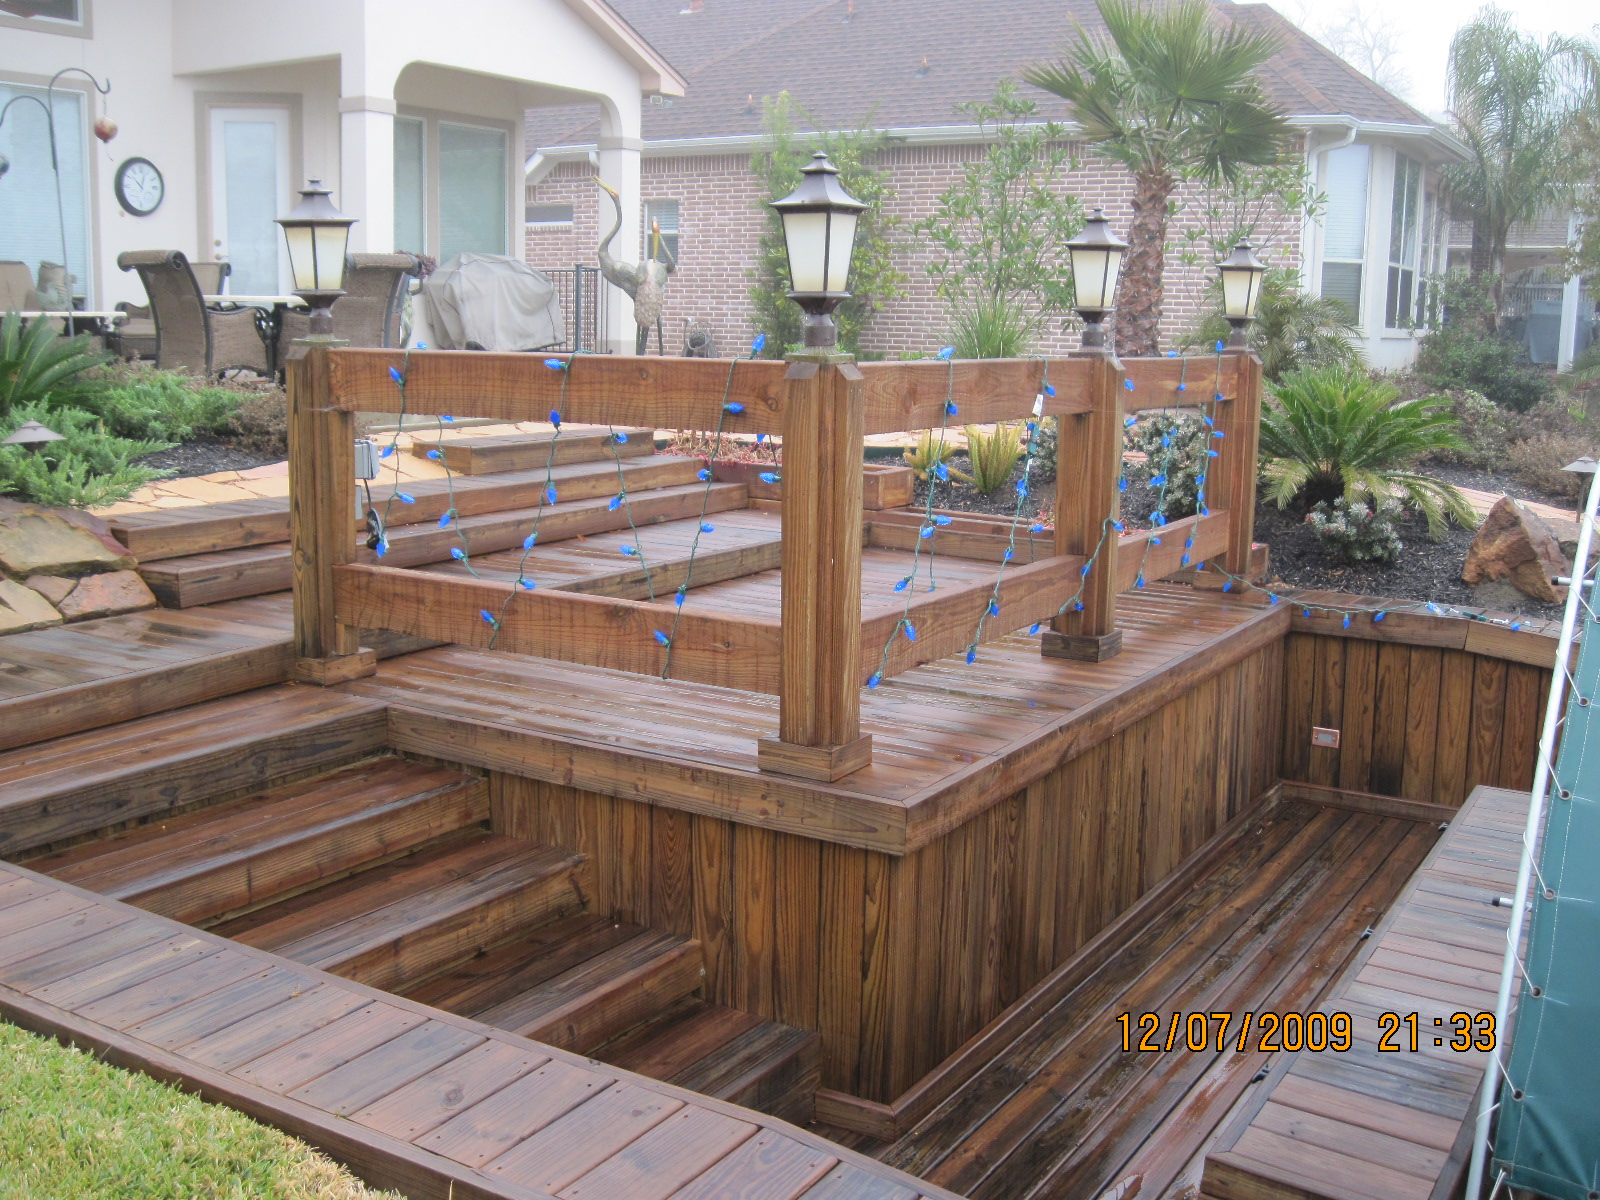 Decks Gazebos And More 187 Waterfront Build And Repair Services